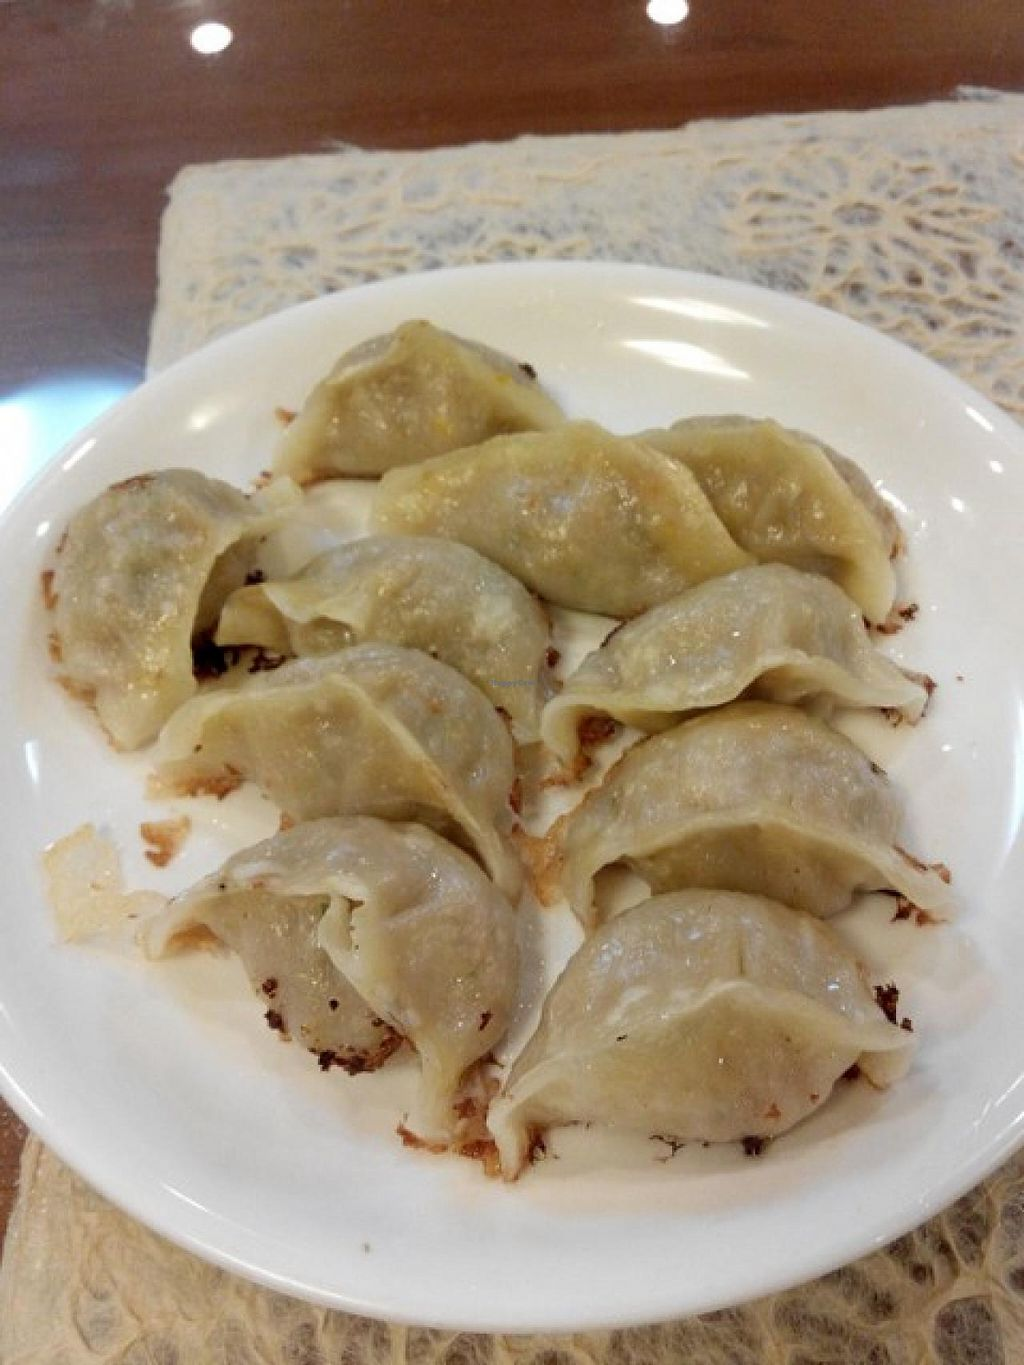 "Photo of CLOSED: Di Shuei Restaurant  by <a href=""/members/profile/LaiNamKhim"">LaiNamKhim</a> <br/>A big plate of pot-stickers (gyoza) for 5000W. The filling is a mix of mock meat and vegetables. Very tasty with a good texture and crispy one side <br/> September 30, 2014  - <a href='/contact/abuse/image/29319/81687'>Report</a>"